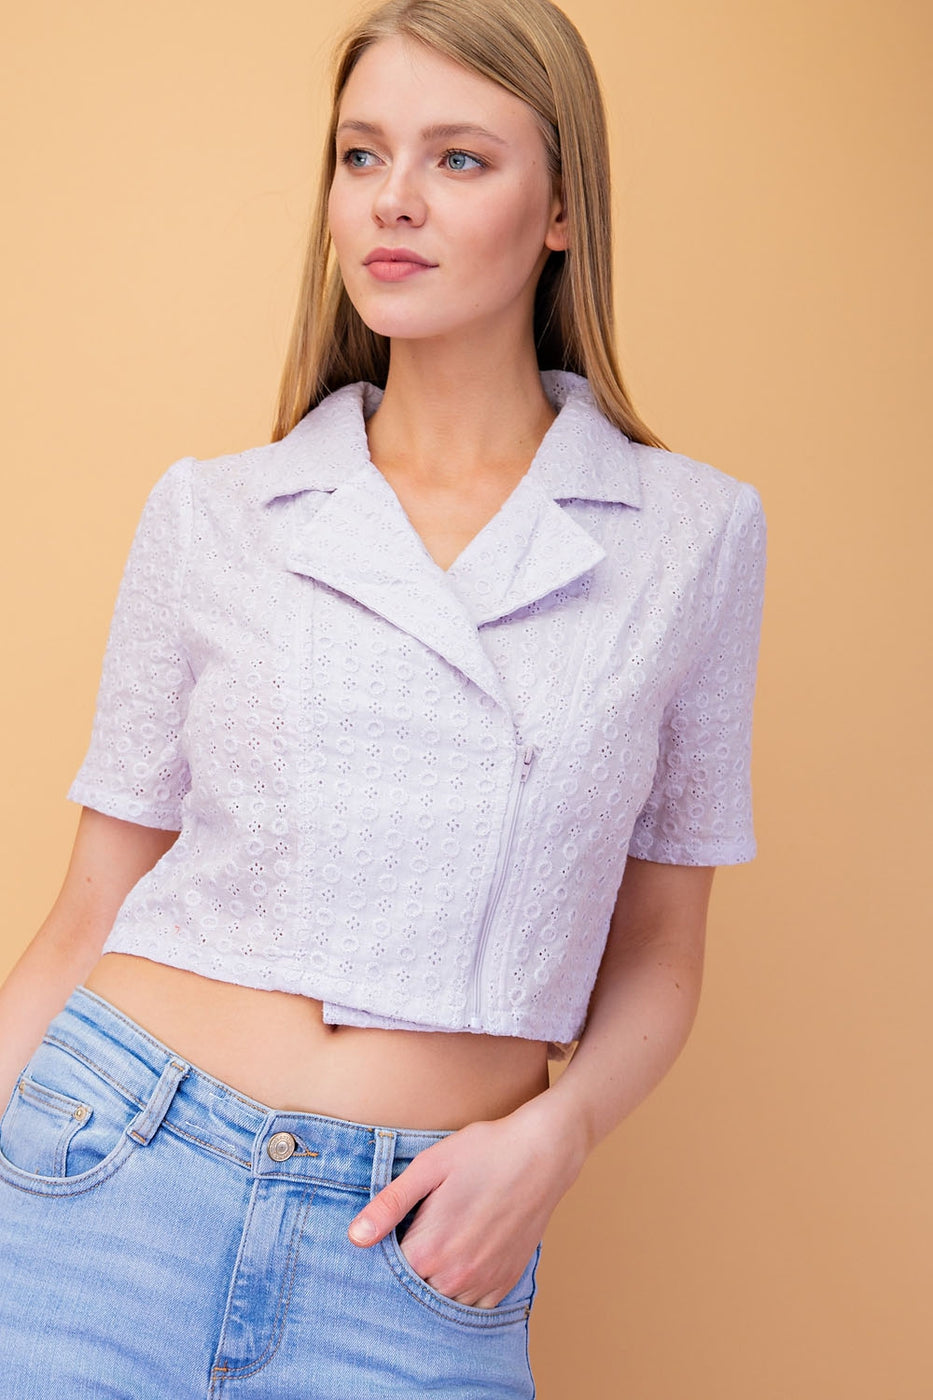 Multi Purpose Cotton Eyelet Motor Jacket/ Top In Lavender Siin Bees